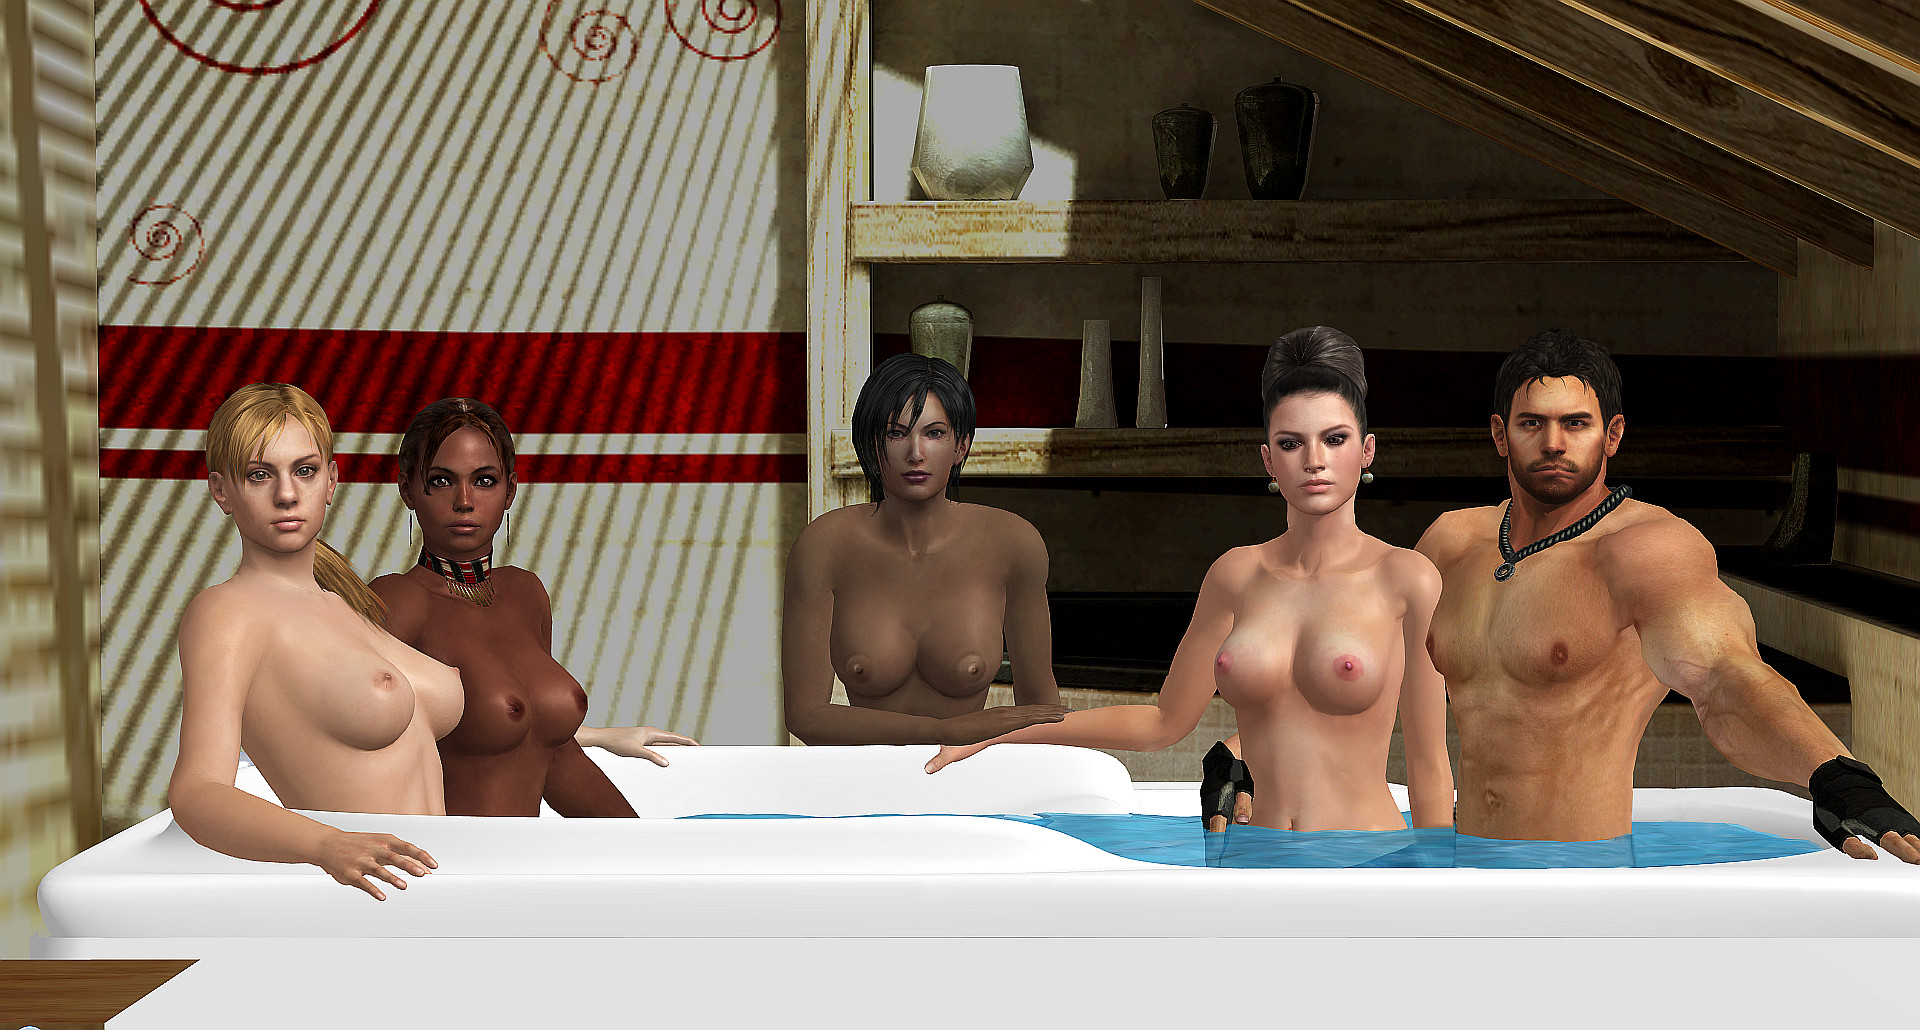 3d sex villa resident evil models sex galleries